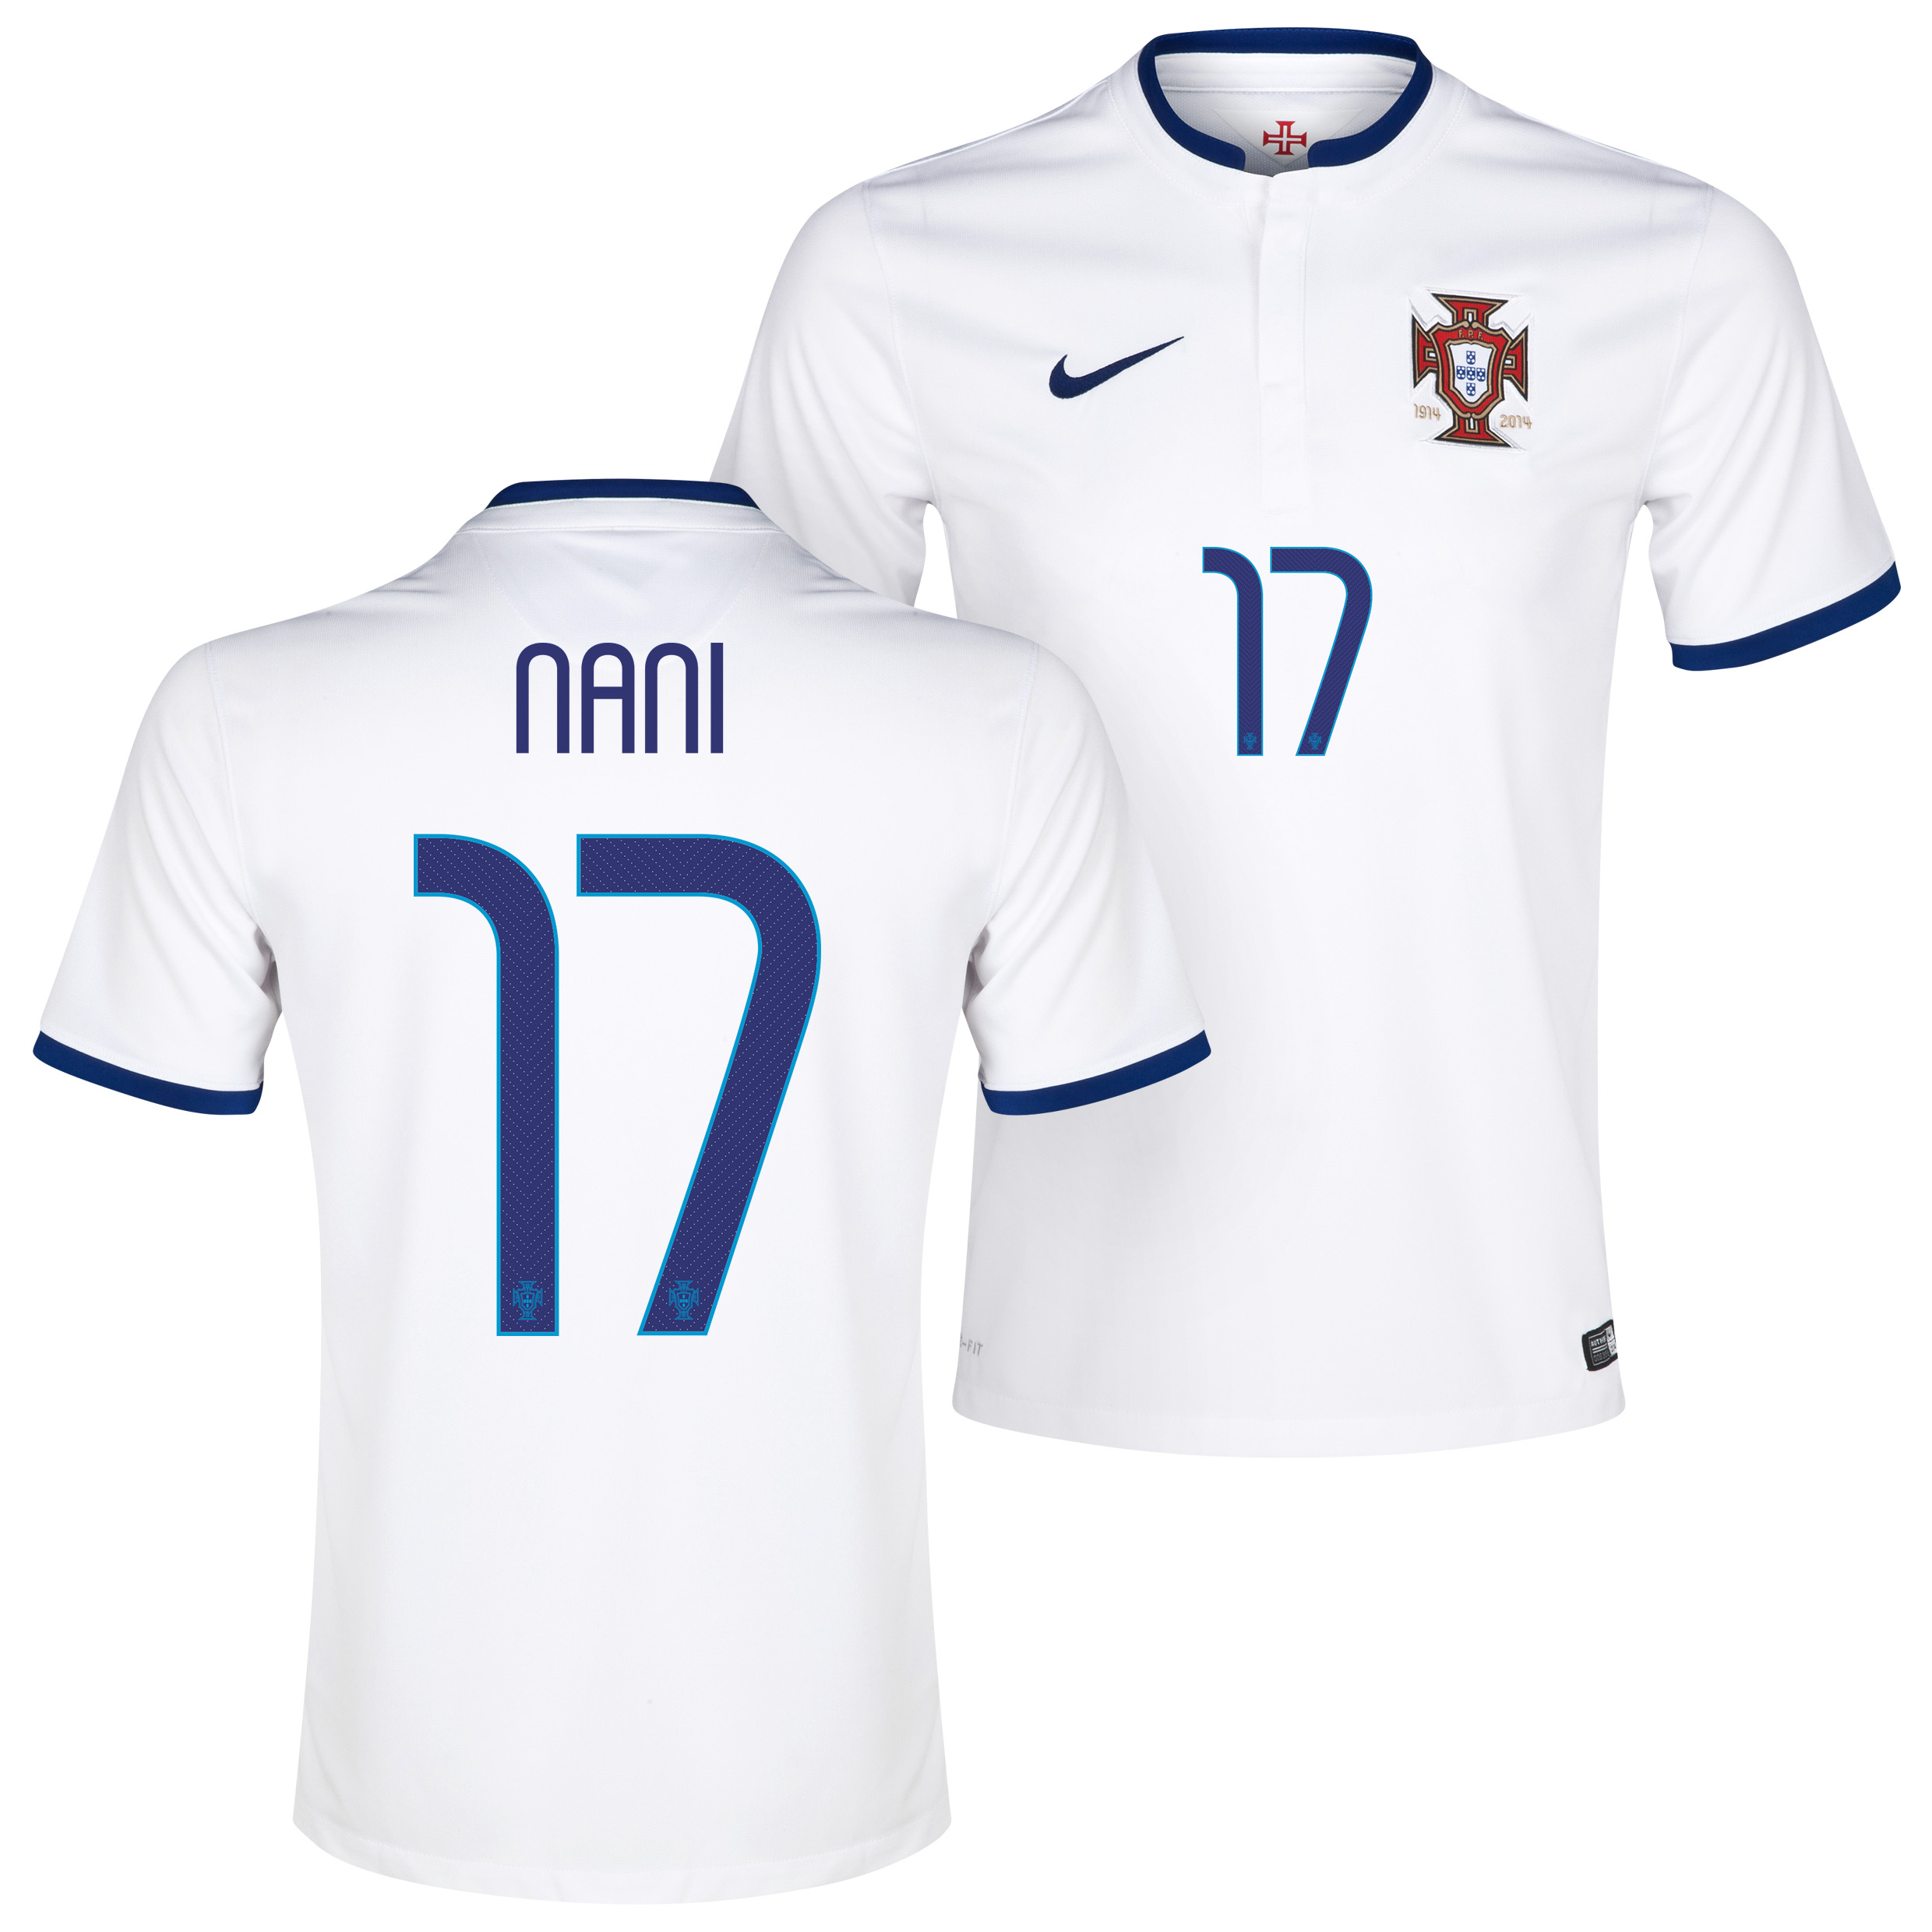 Portugal Away Shirt 2014/15 White with Nani 17 printing